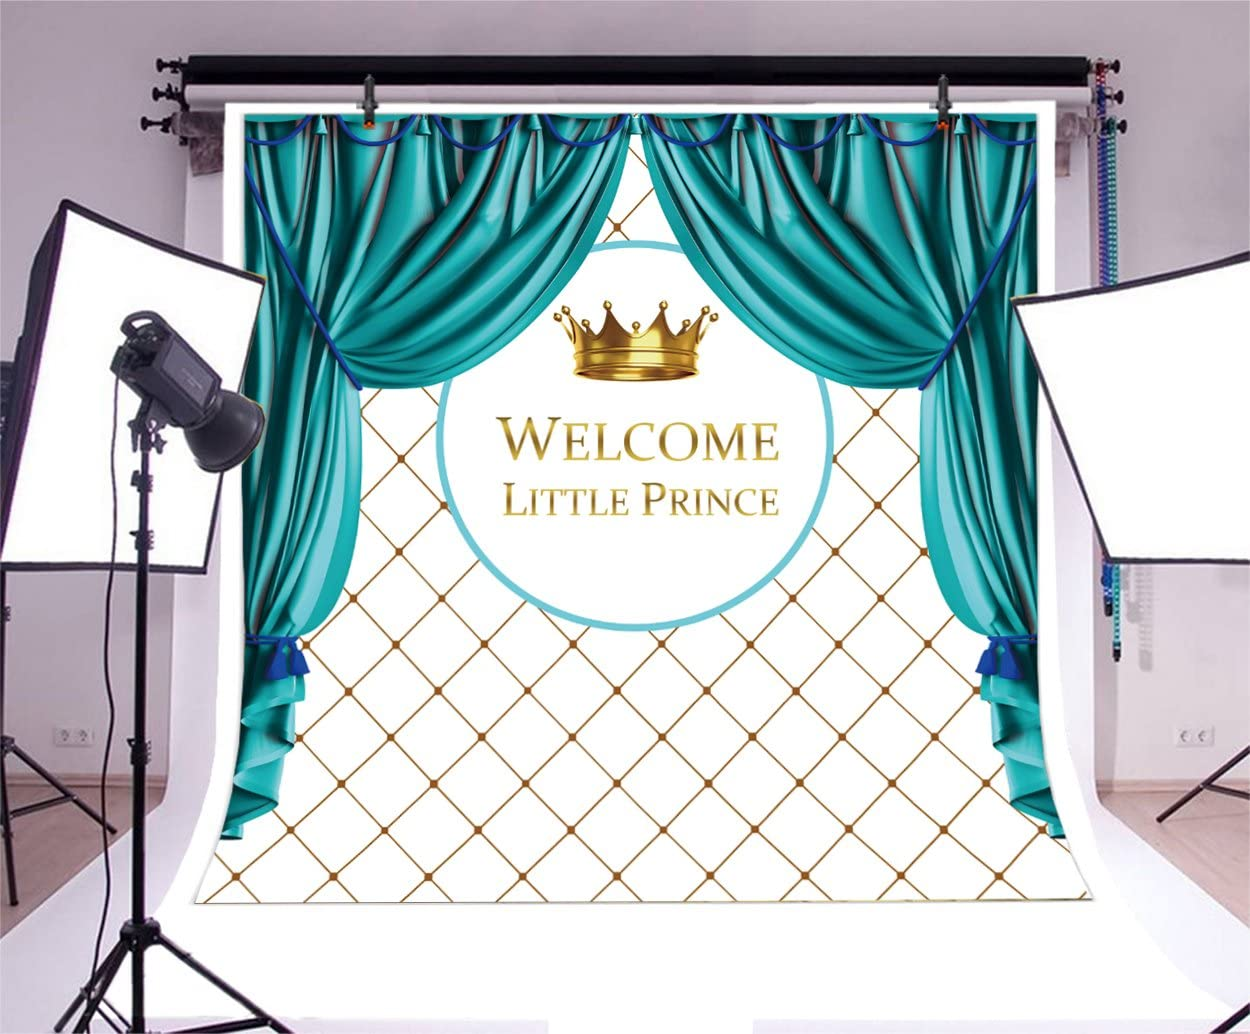 Art Studio 7x5FT Royal Prince Photography Backdrops Crown Photo Background Studio Props Baby Shower Child Birthday Party Decor Welcome Little Boy Photo Booth Vinyl